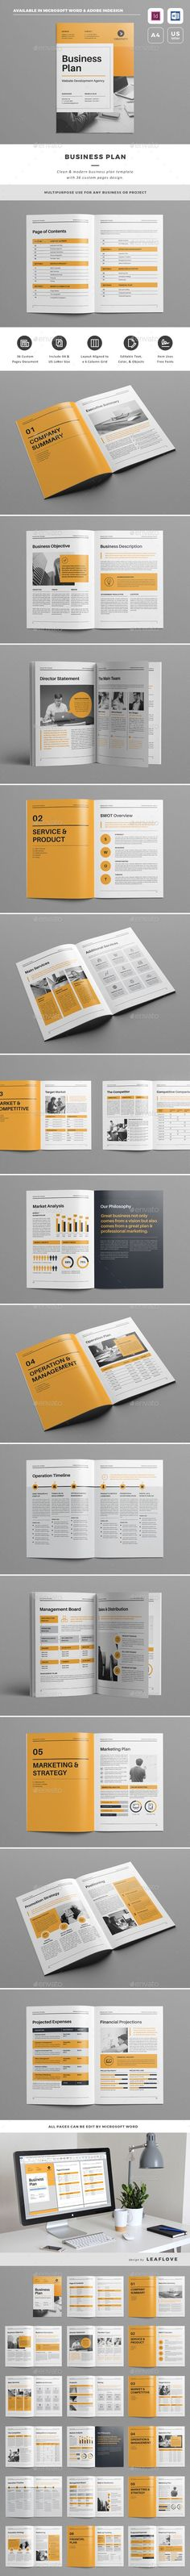 The business plan template indesign indd download here http business plan proposals invoices stationery download here httpsgraphicriver wajeb Images